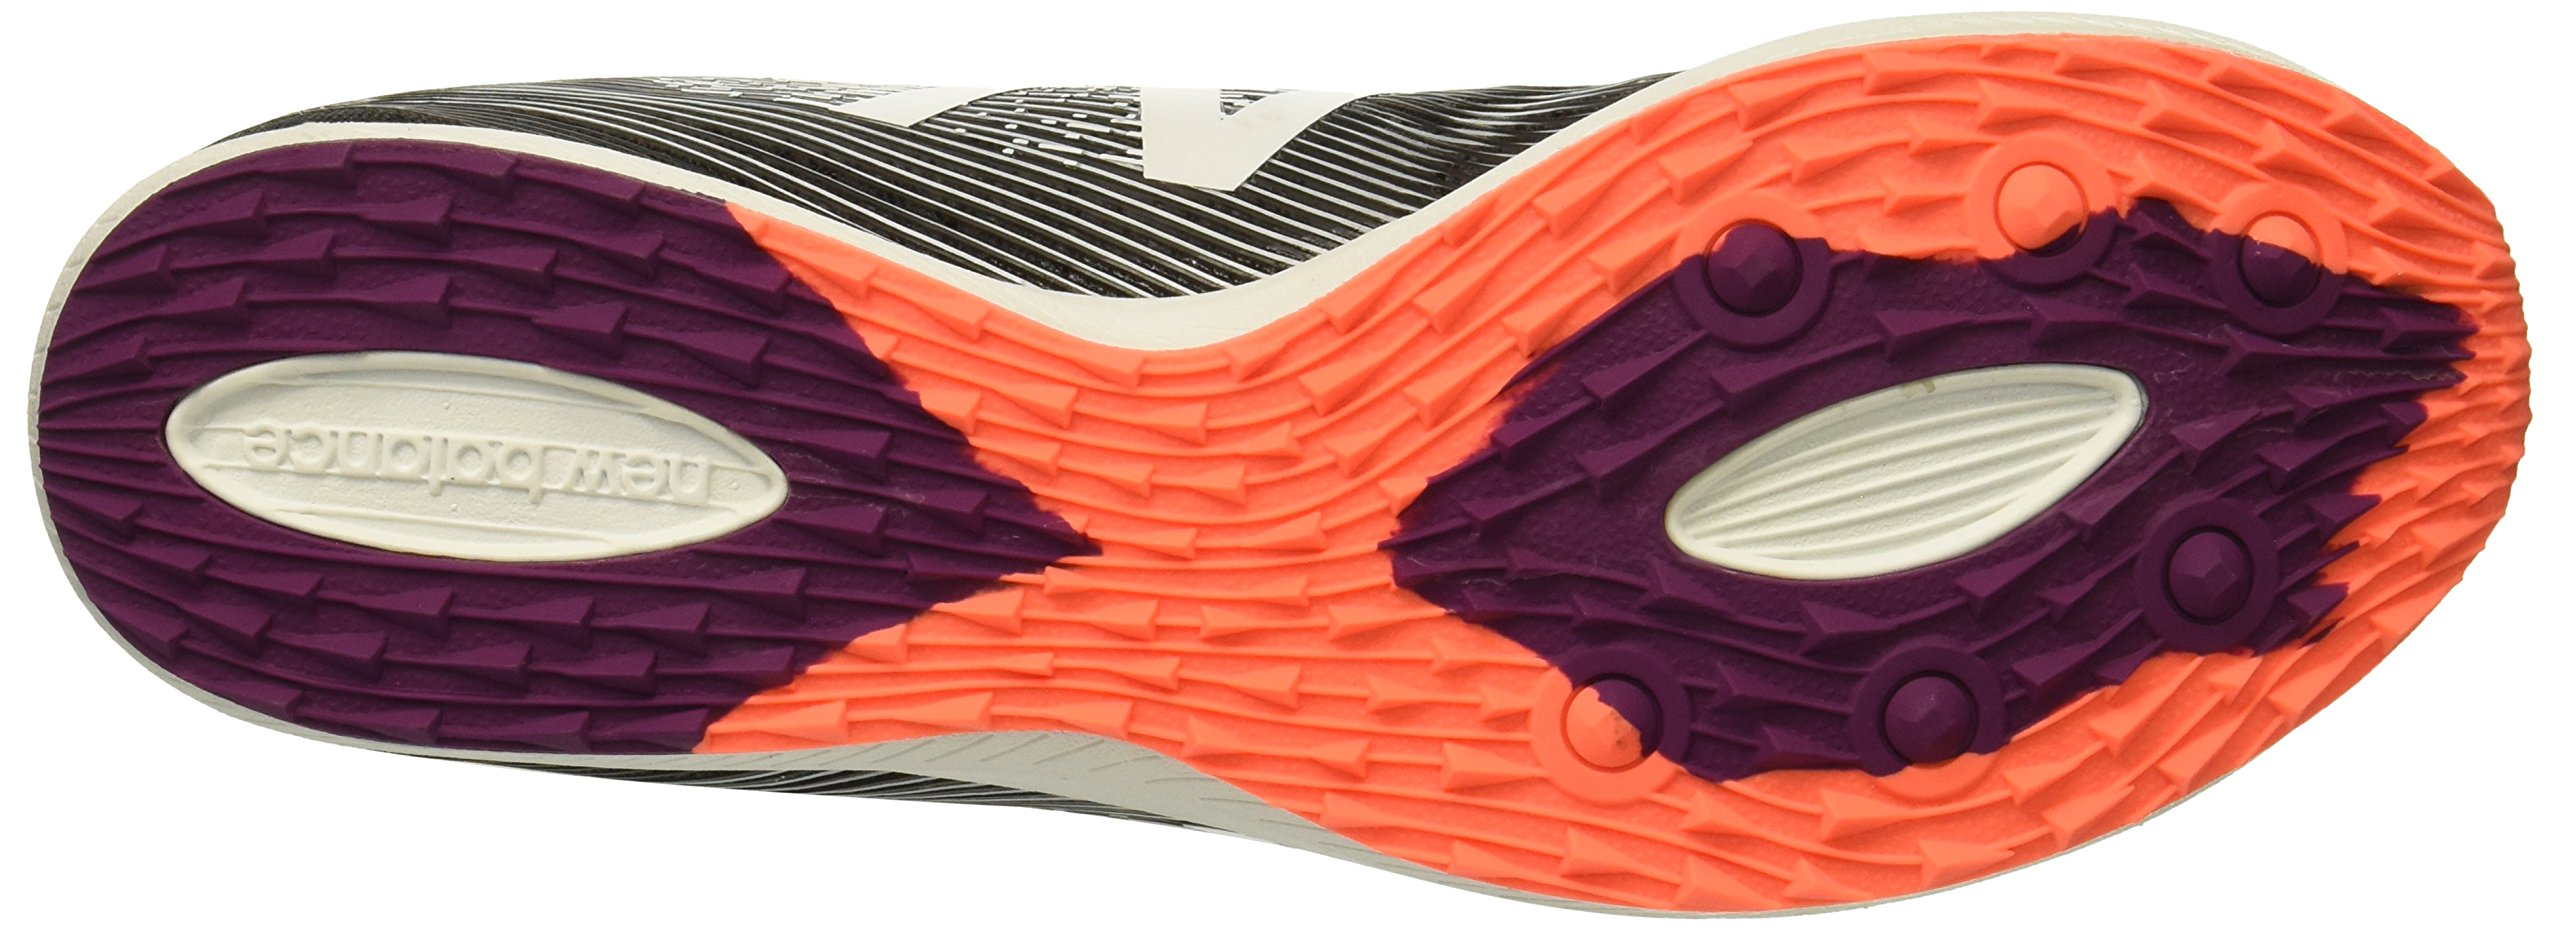 New Balance Women's 7v1 Cross Country Running Shoe, Black, 6.5 B US by New Balance (Image #3)